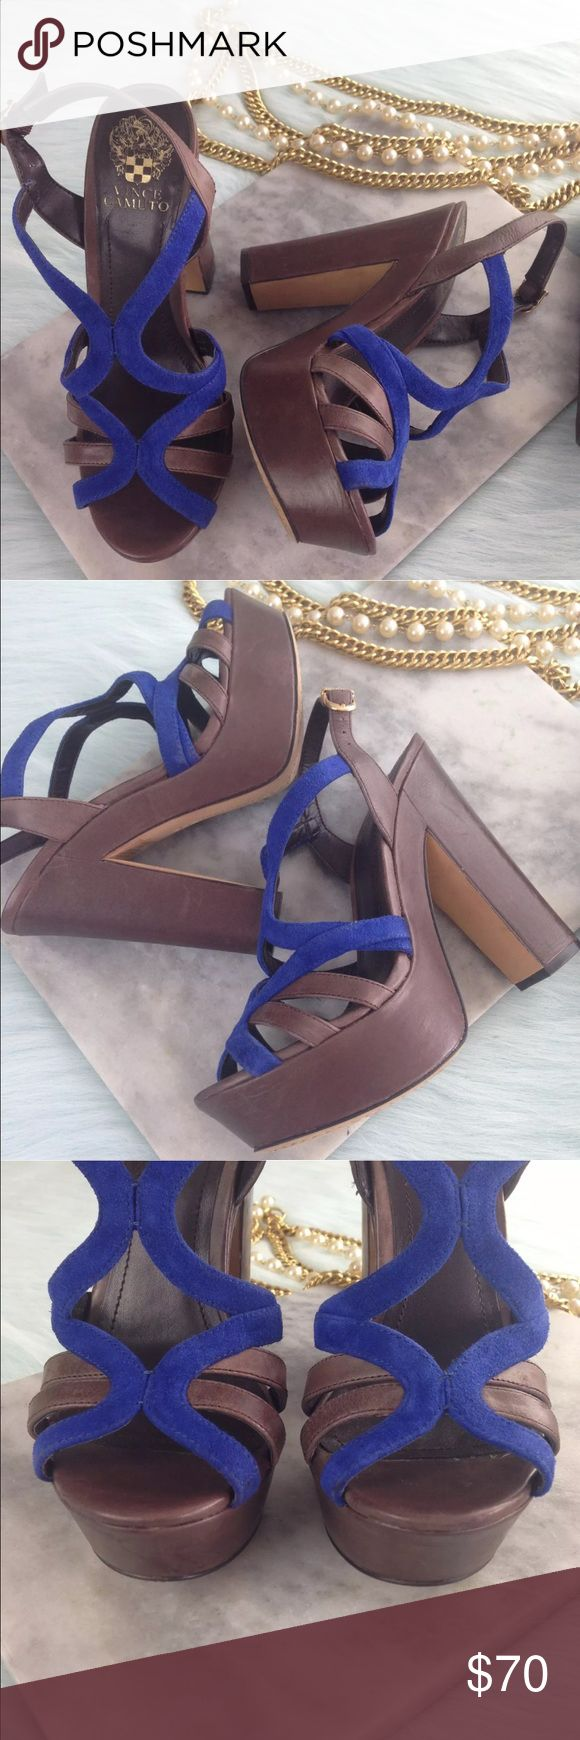 Vince Camuto $160 Platform Wedge Heels Shoes Vince Camuto $160 Womens Blue Brown Leather Platform Wedge Heels Sandals Shoes 8 Condition: Excellent; worn once Style: Deco Features: Brown leather upper with blue leather suede criss-cross straps Ankle straps with logo on buckle Vince Camuto Shoes Platforms